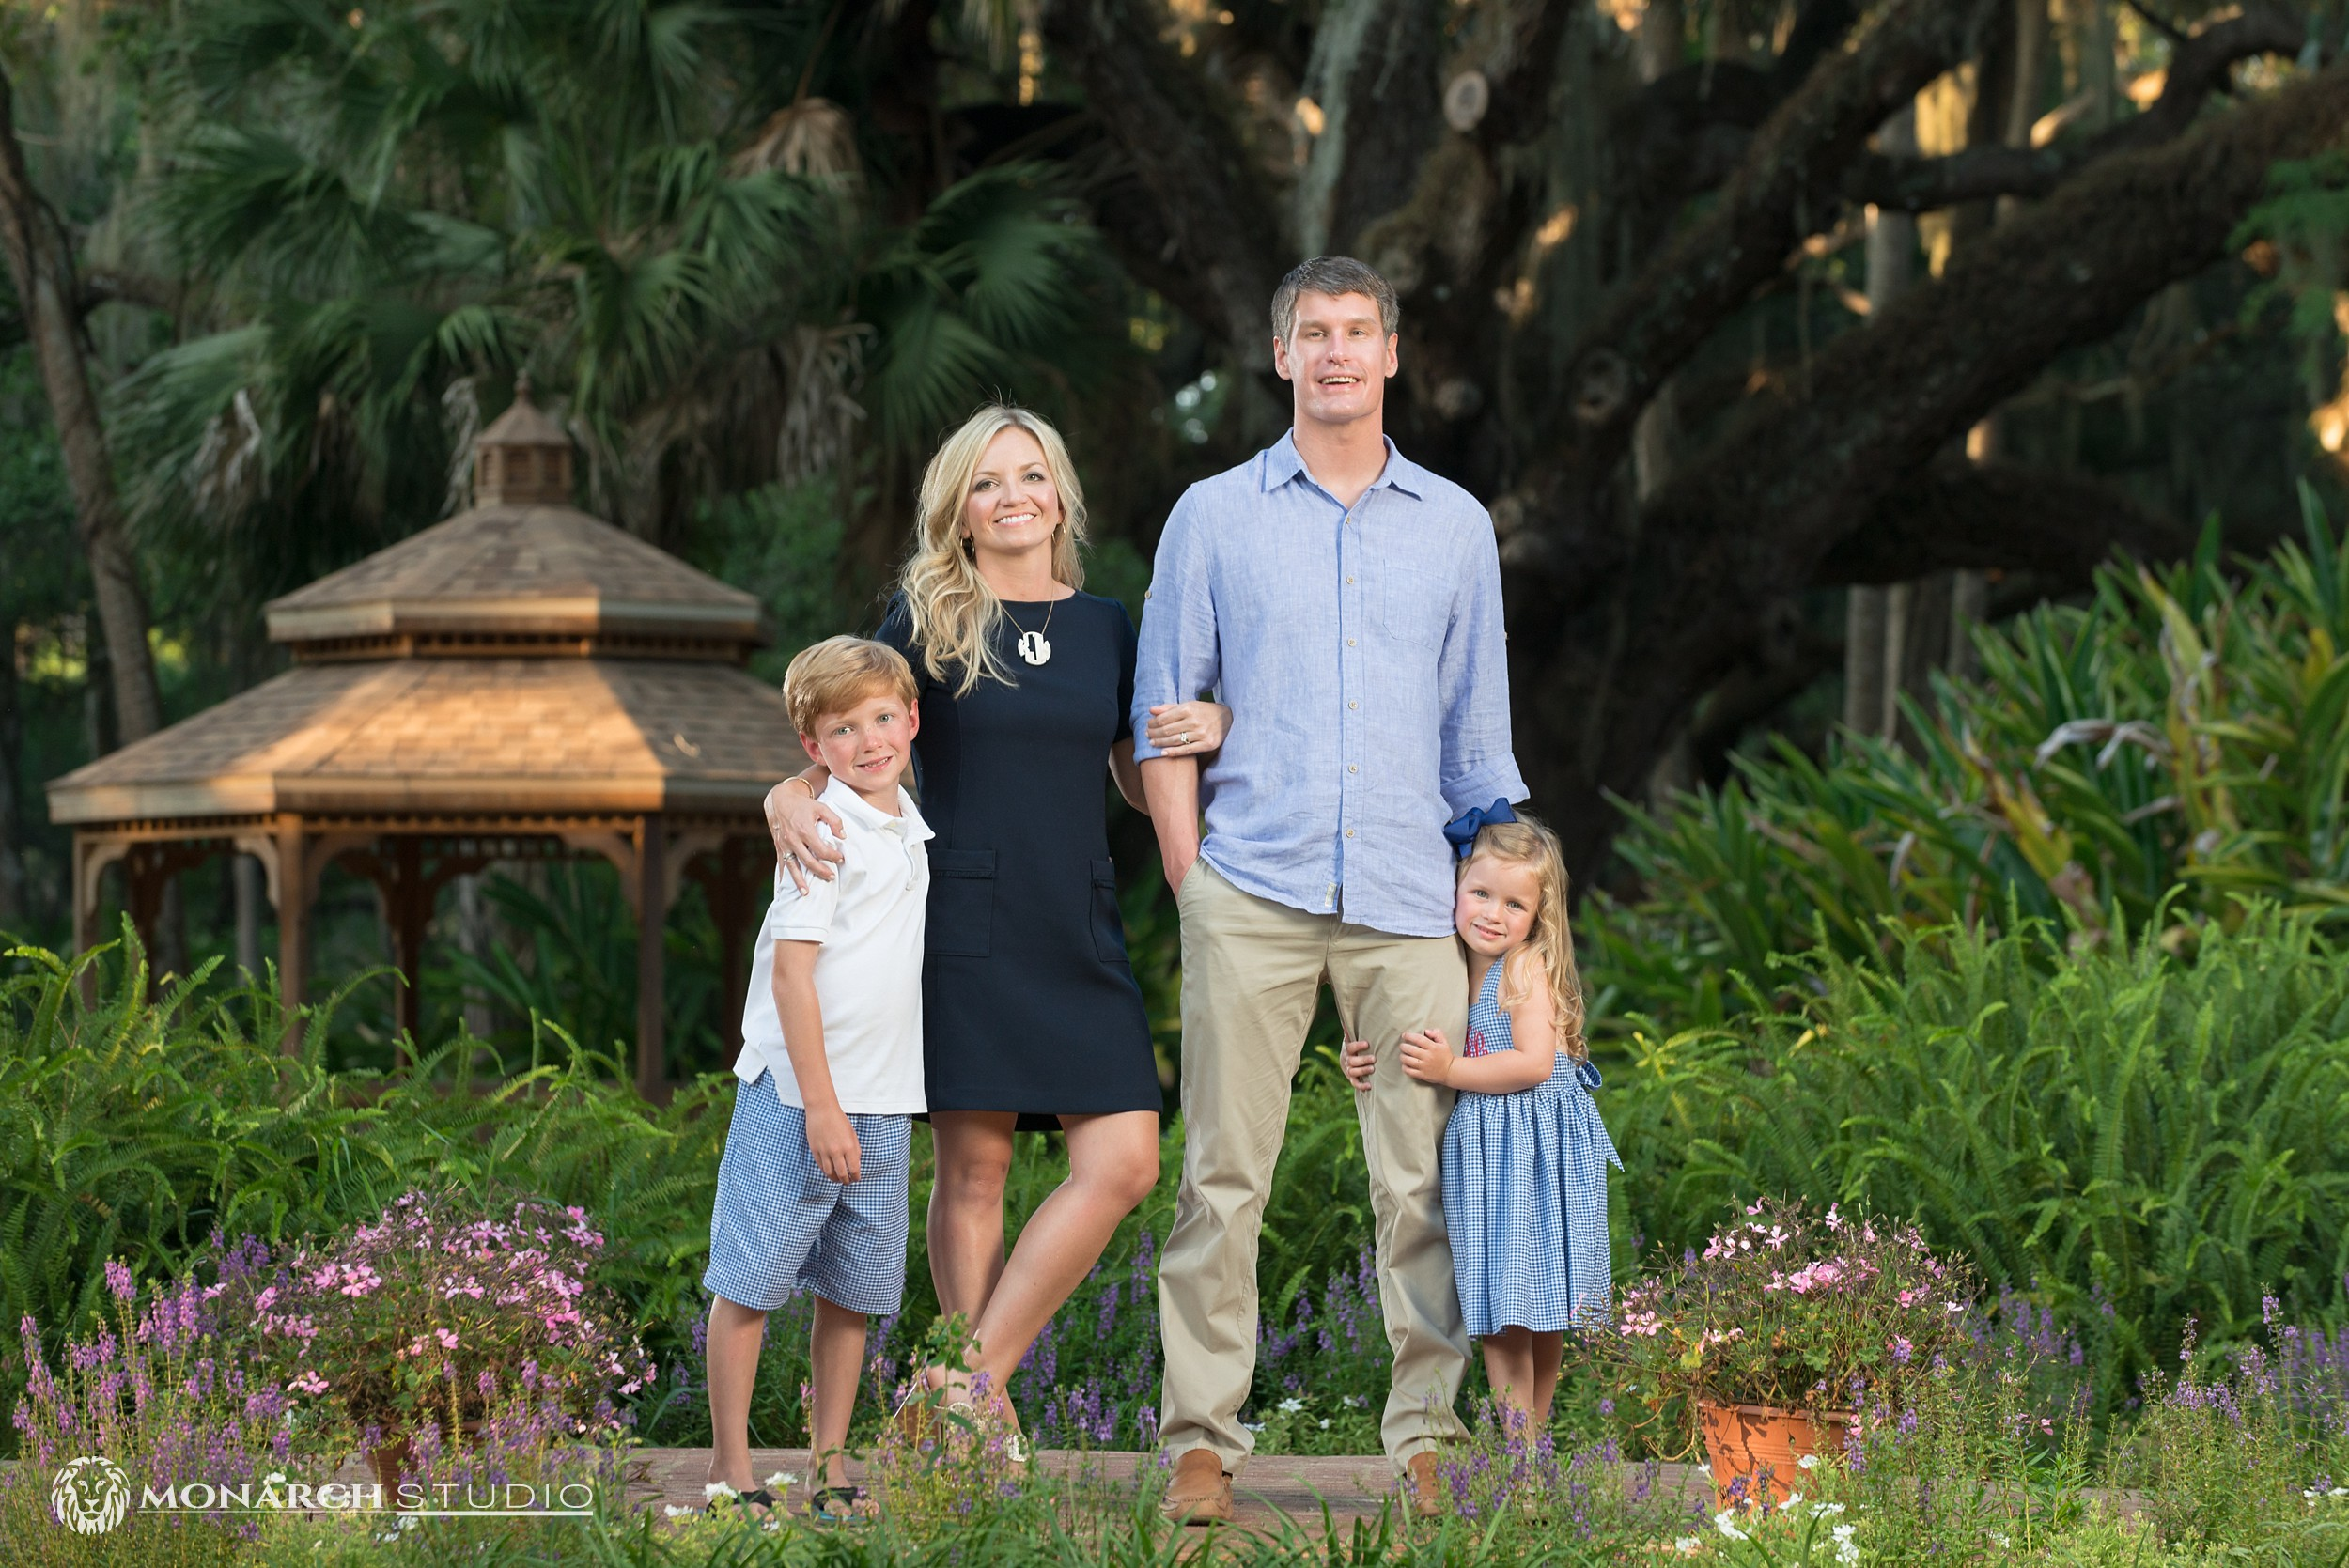 Your St. Augustine Beach family photographers from Monarch Studio will make you feel comfortable and look your best for all your family portraits.